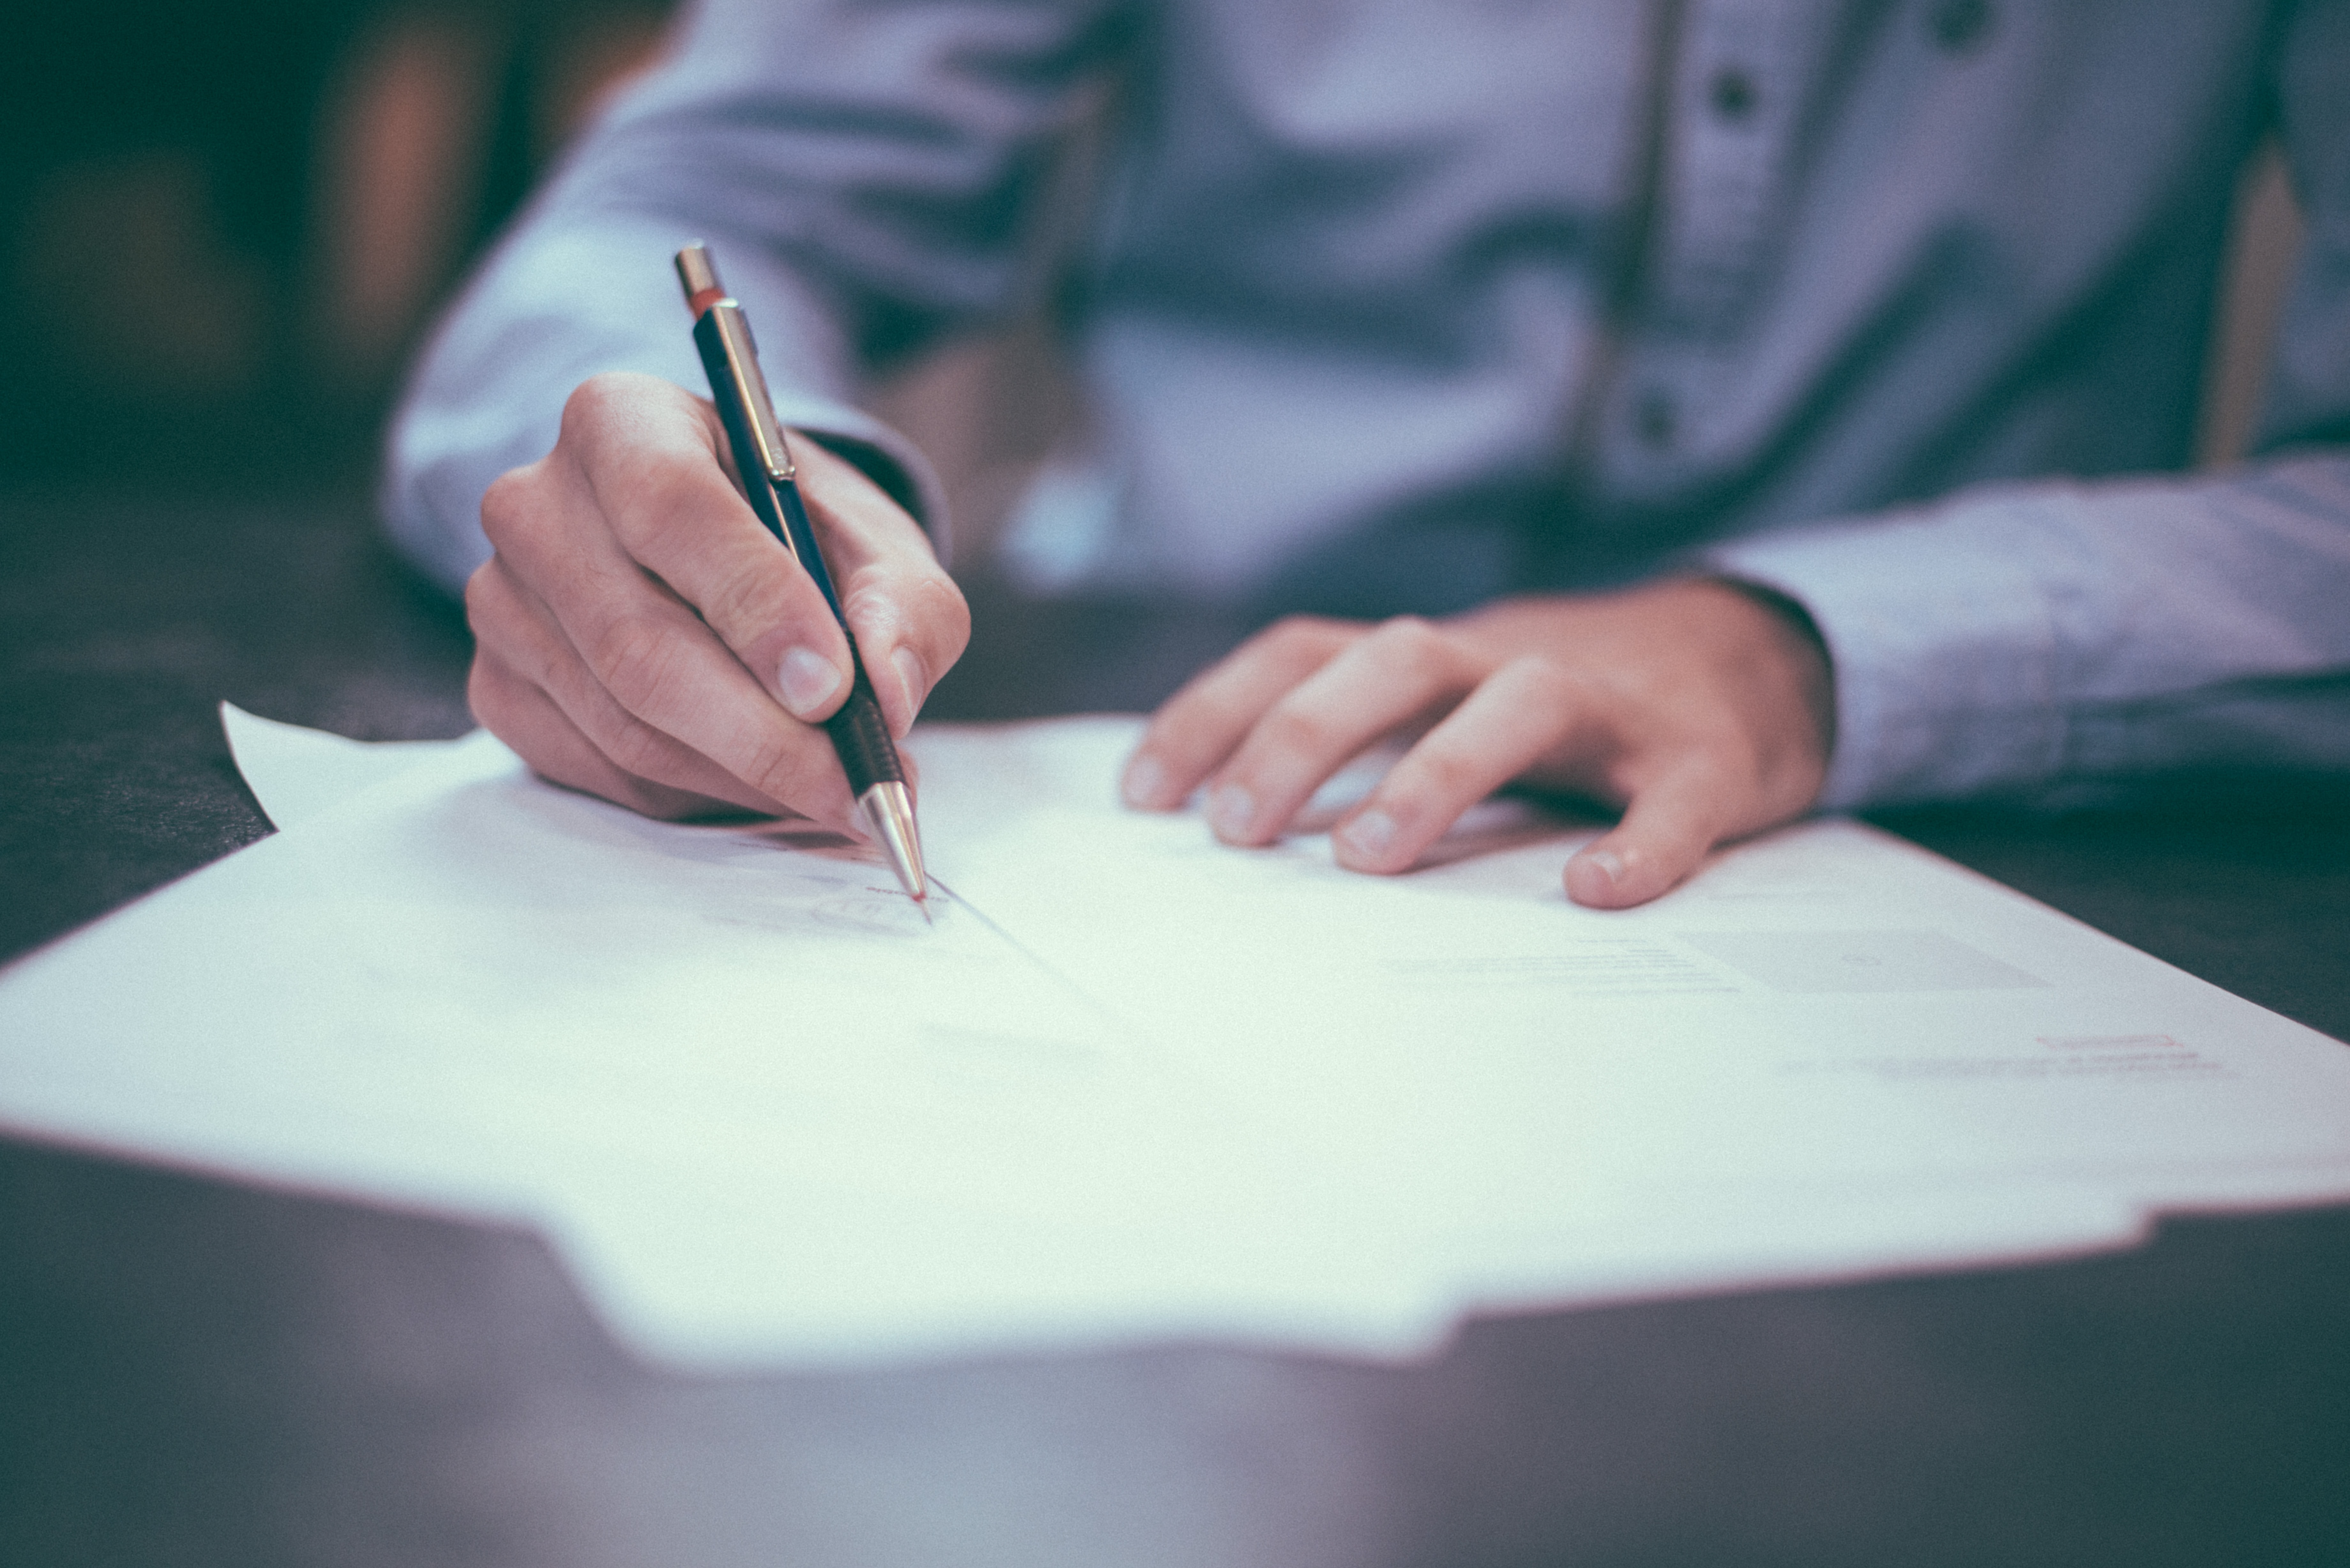 4 Steps to Appeal a Denied Insurance Claim